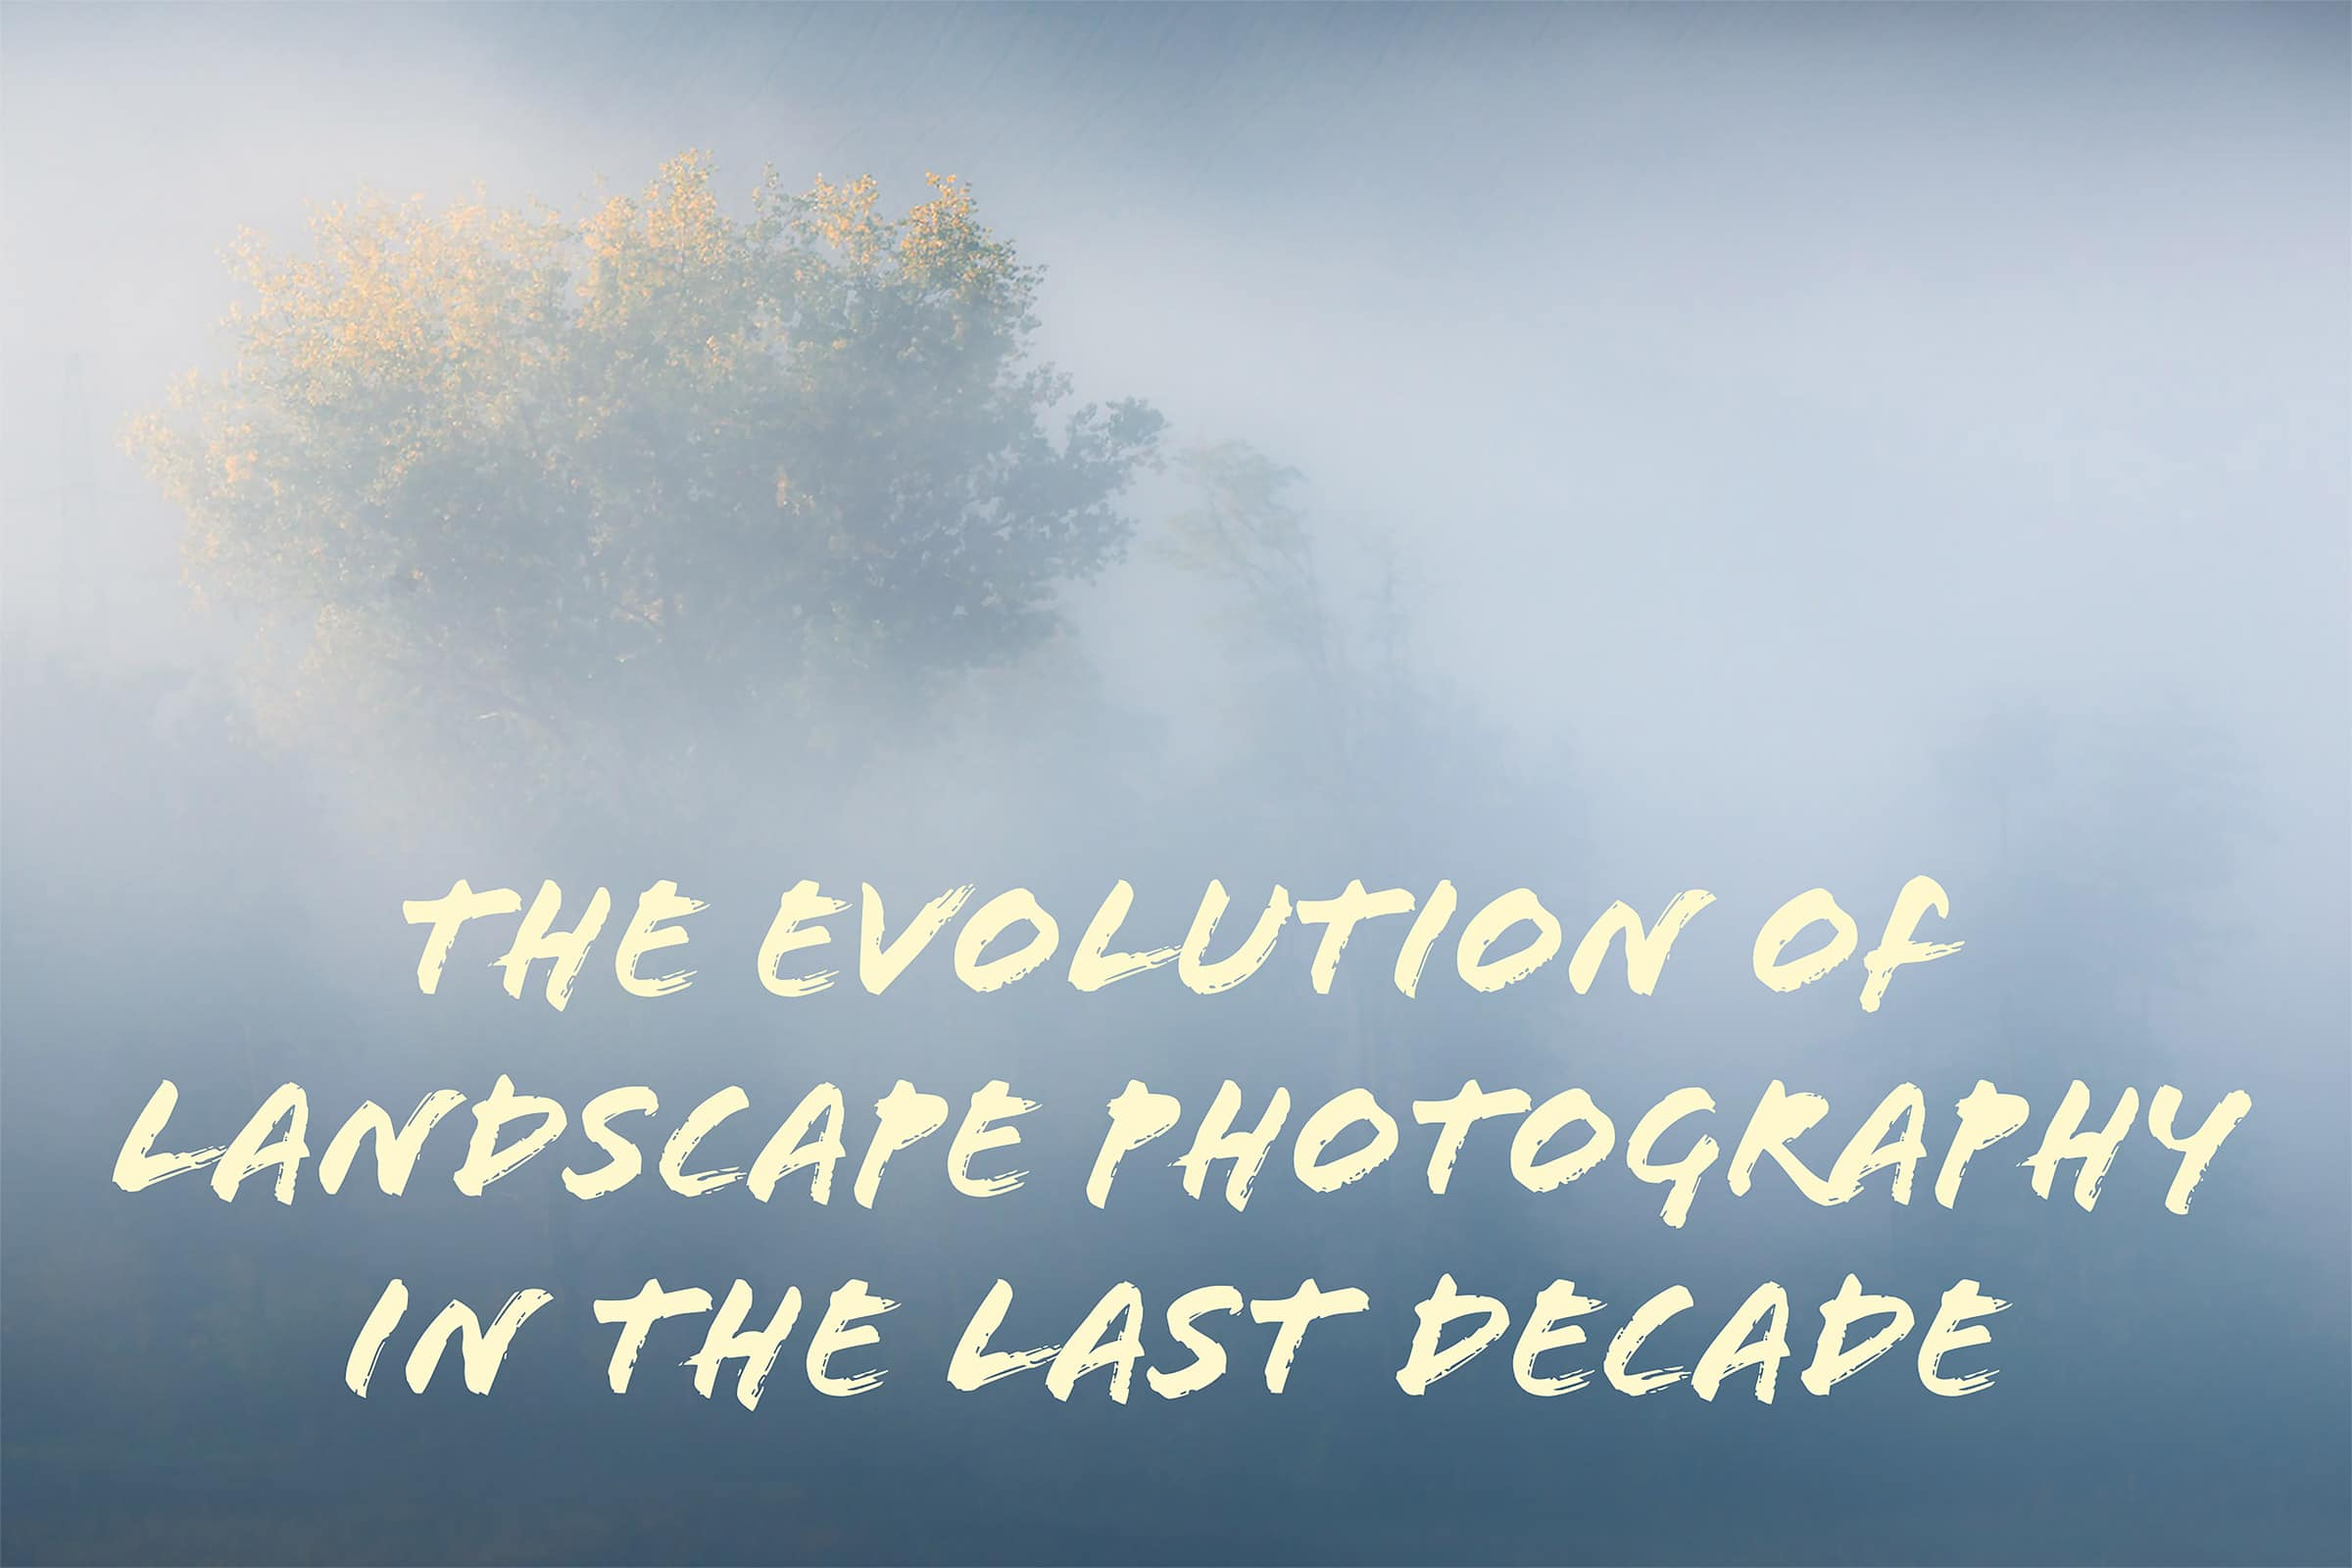 the evolution of landscape photography in the last decade